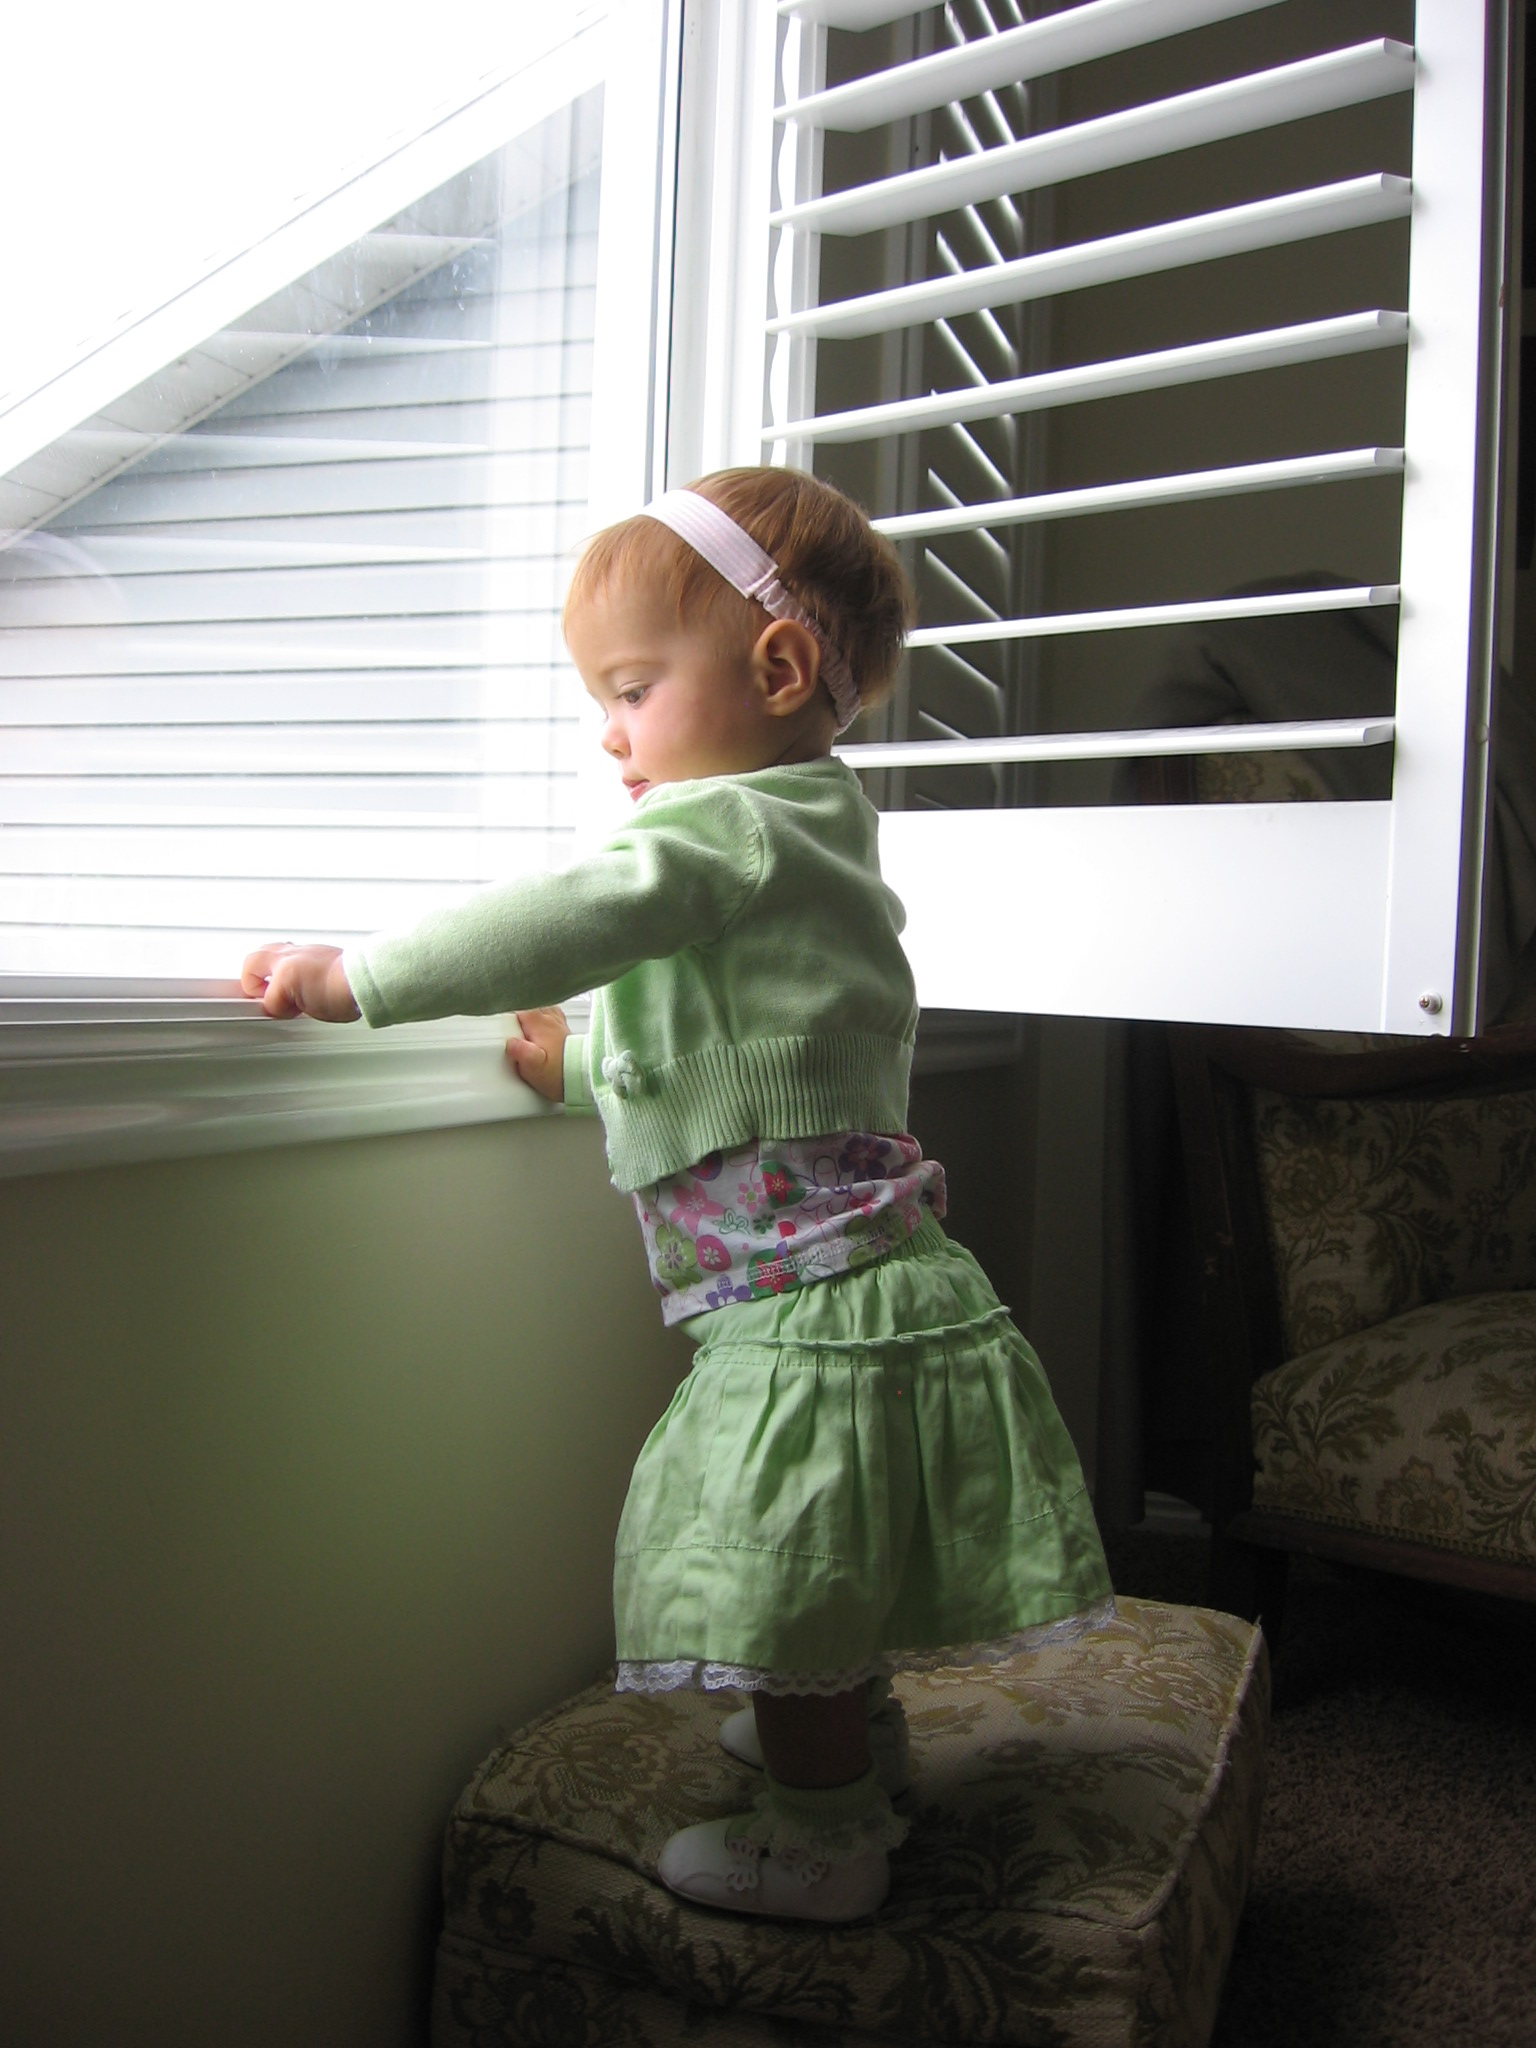 Looking Out the Window